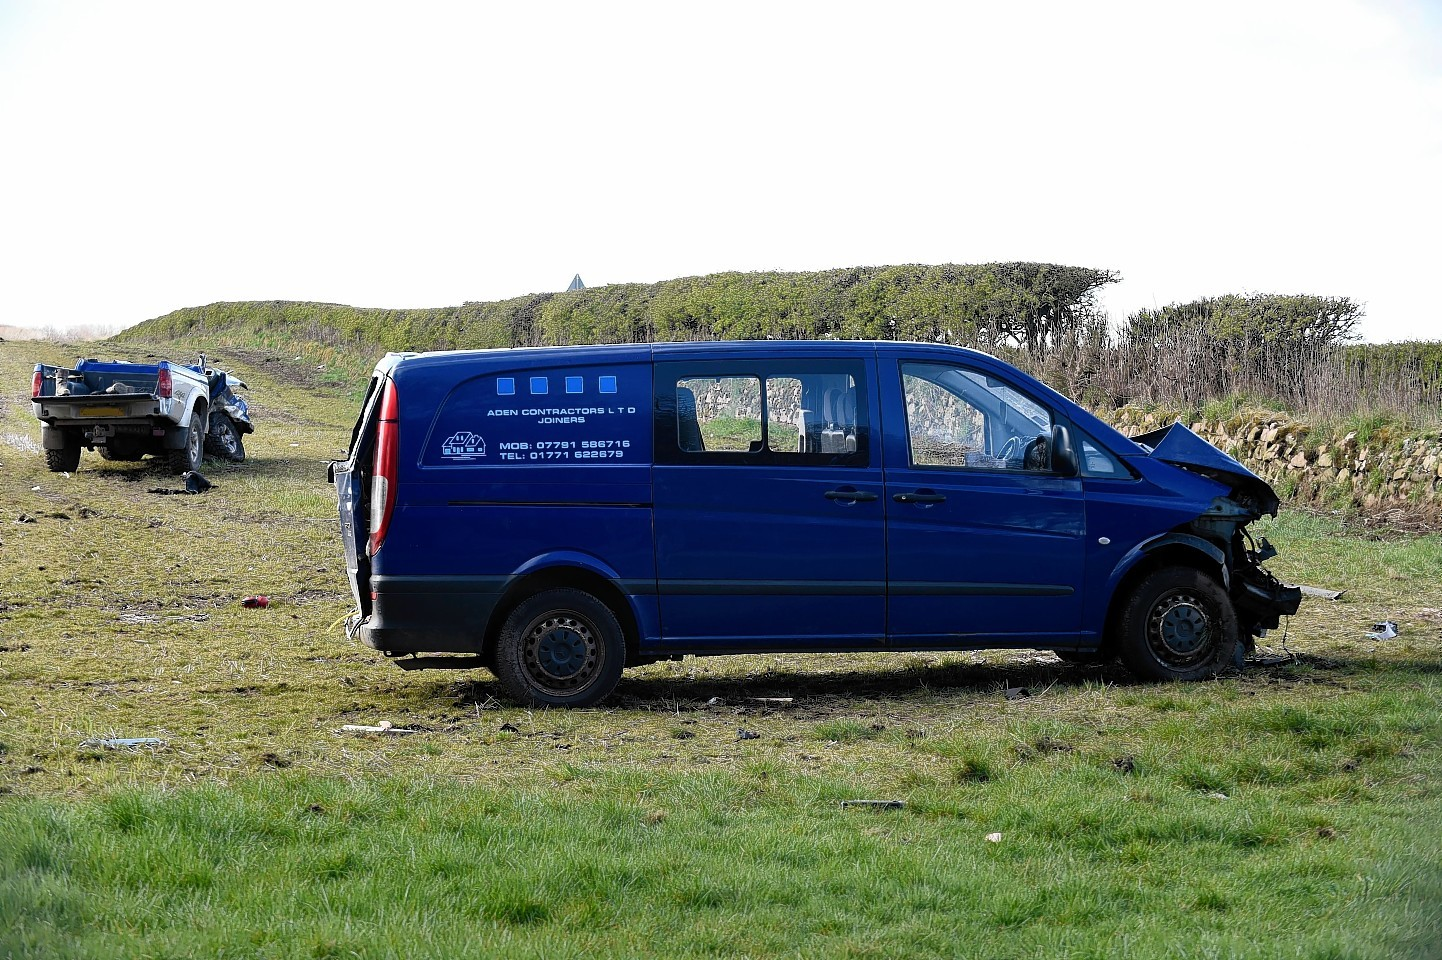 The van landed not far from the other vehicle, in a nearby field